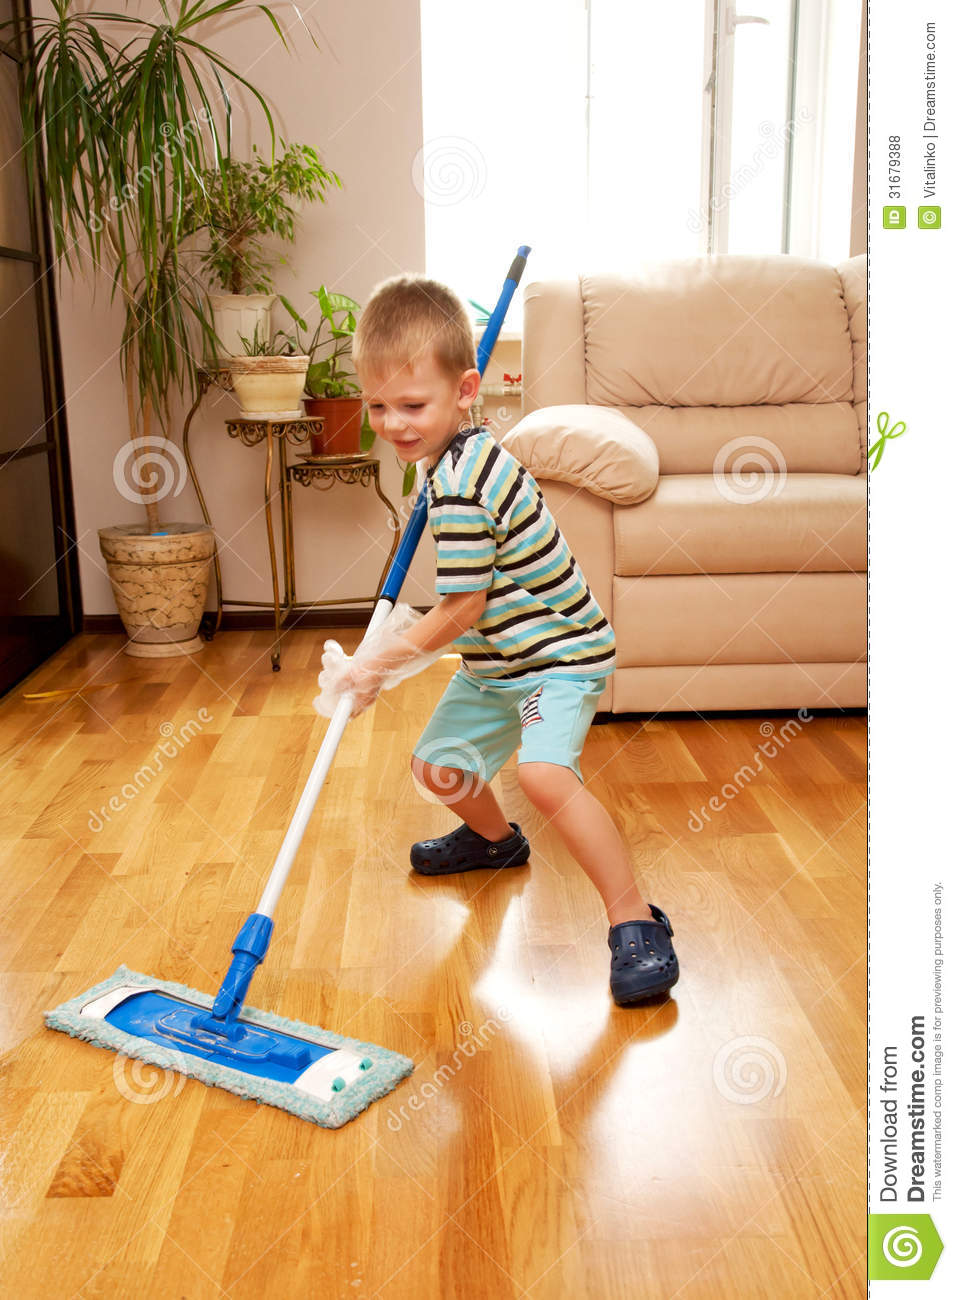 Little Boy Cleaning Apartment Little Home Helper Stock Photo  Image 31679388